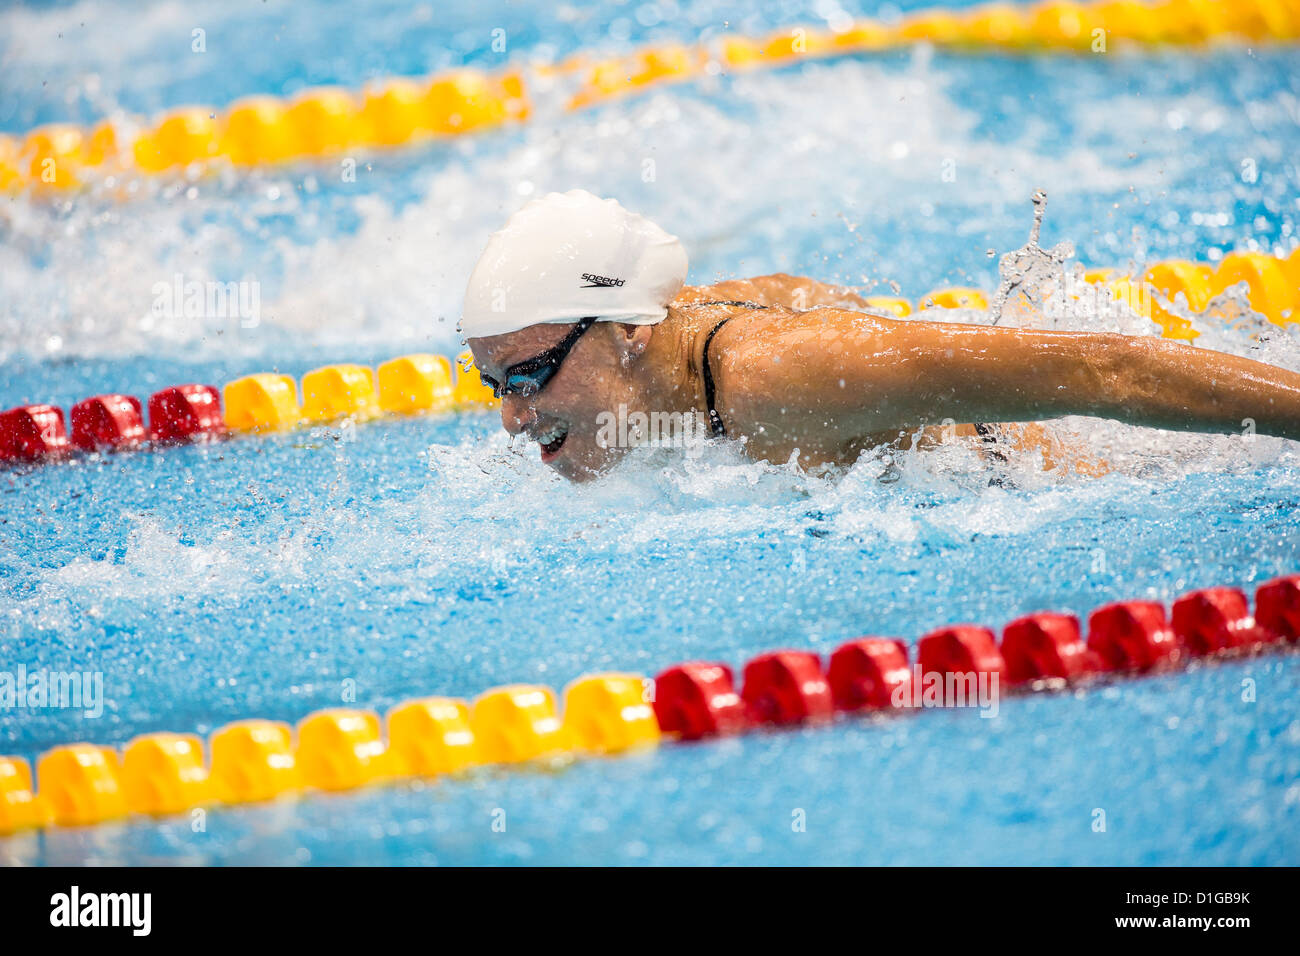 Dana Vollmer (USA) competing Women's 100m Butterfly Heat at the 2012 Olympic Summer Games, London, England. Stock Photo